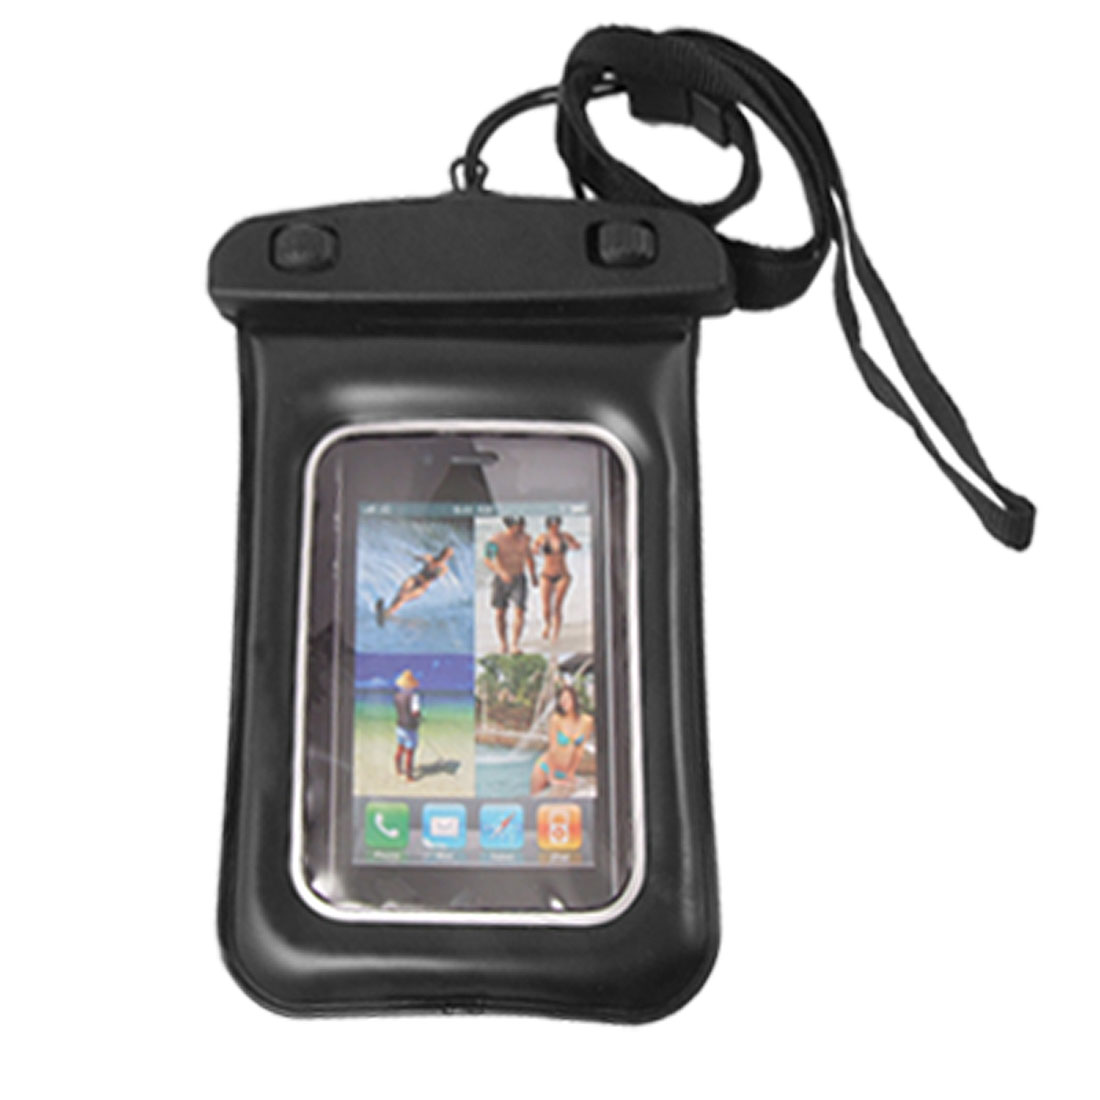 Waterproof Pouch Bag Cover Neck Strap Case for iPhone 4 3G 3GS